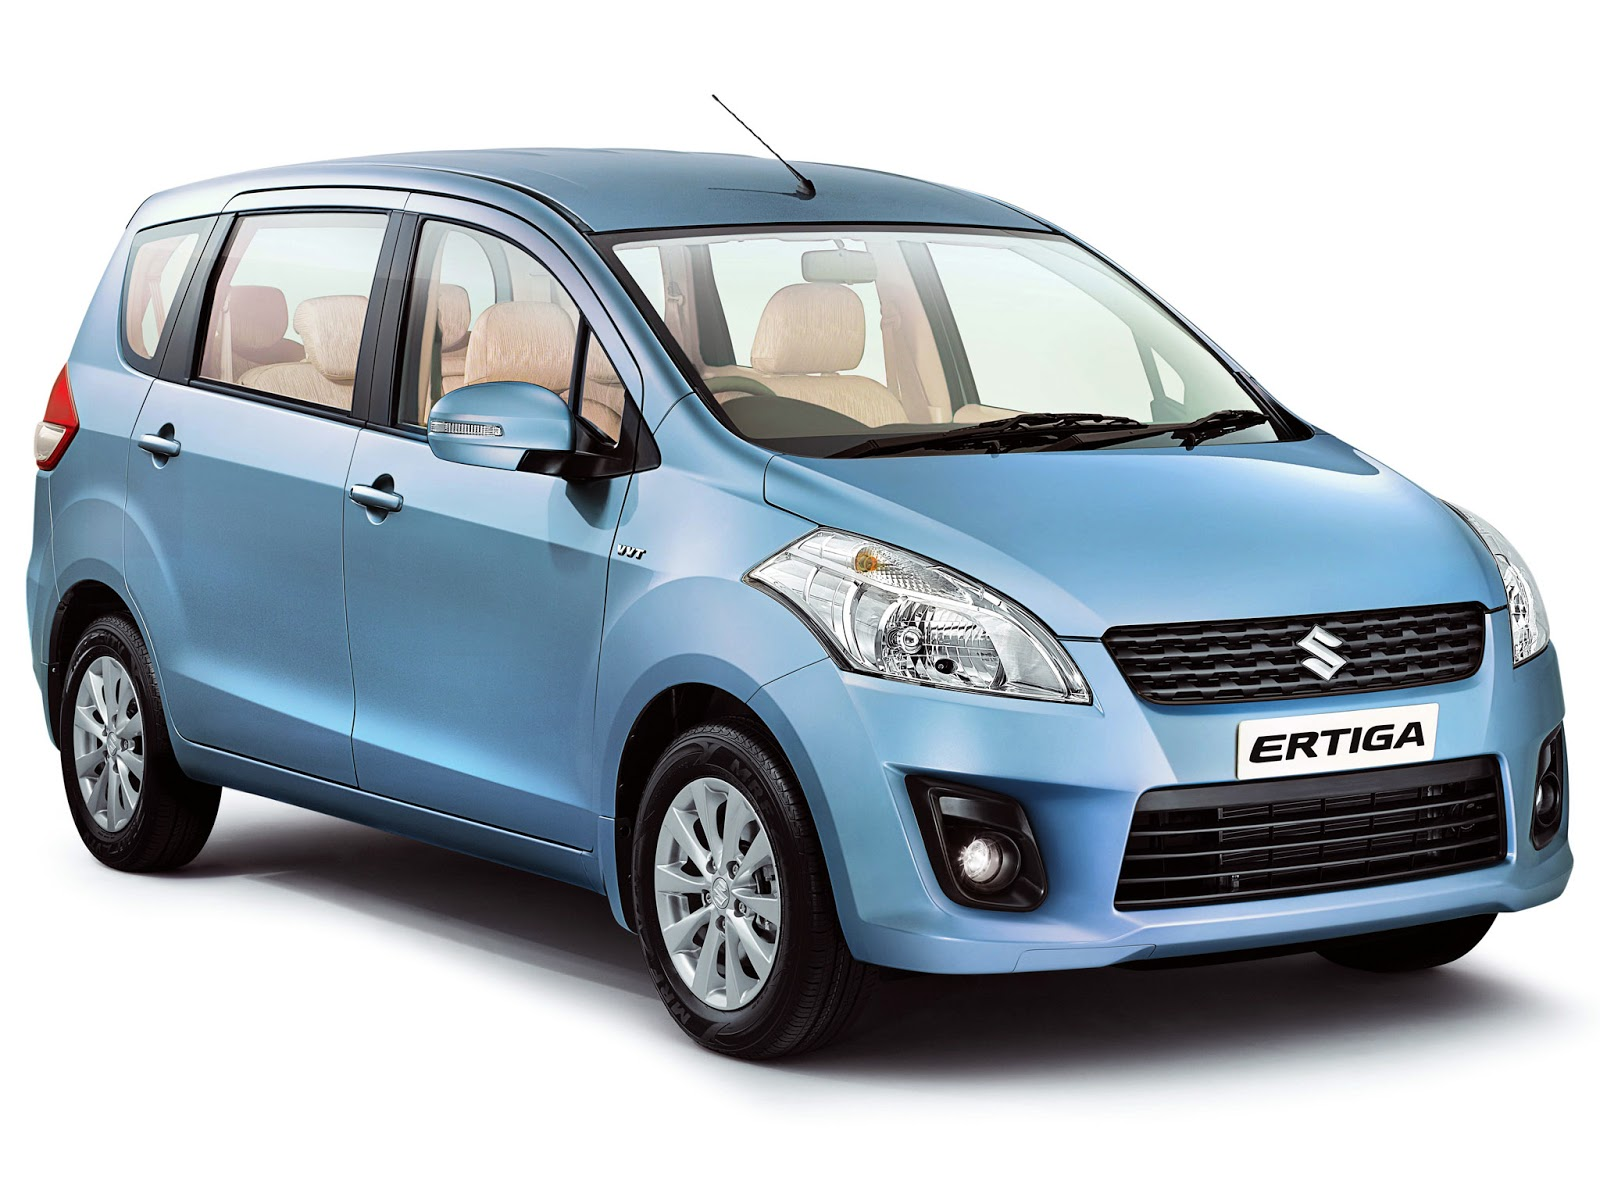 Free Wallpaper Download: Maruti Ertiga Pictures,wallpapers